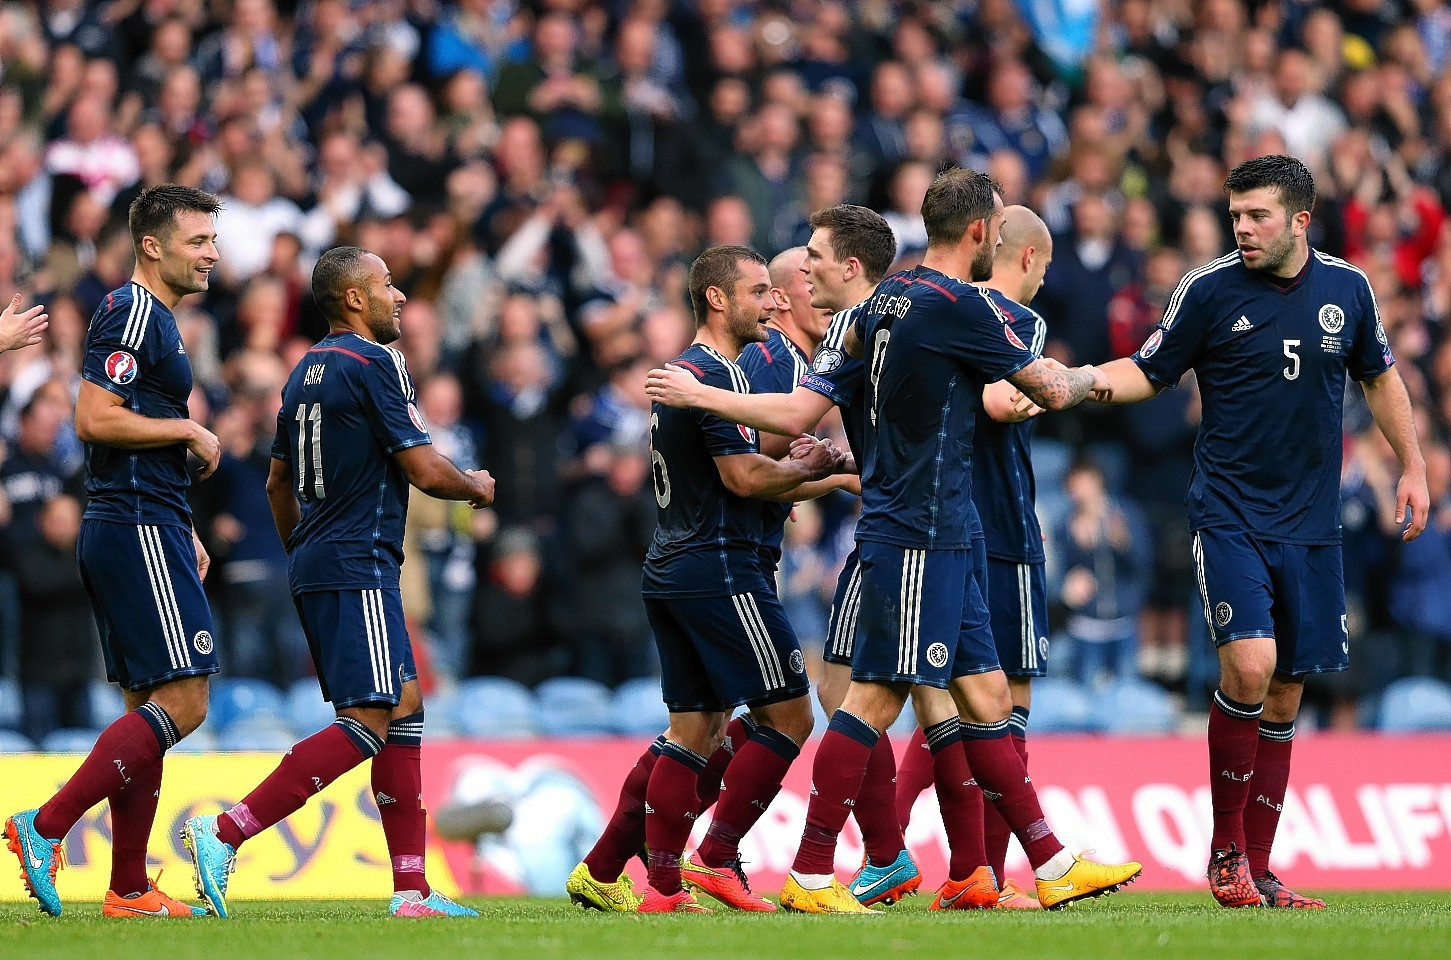 The Scotland players celebrate with Shaun Maloney after his shot resulted in the only goal of the game